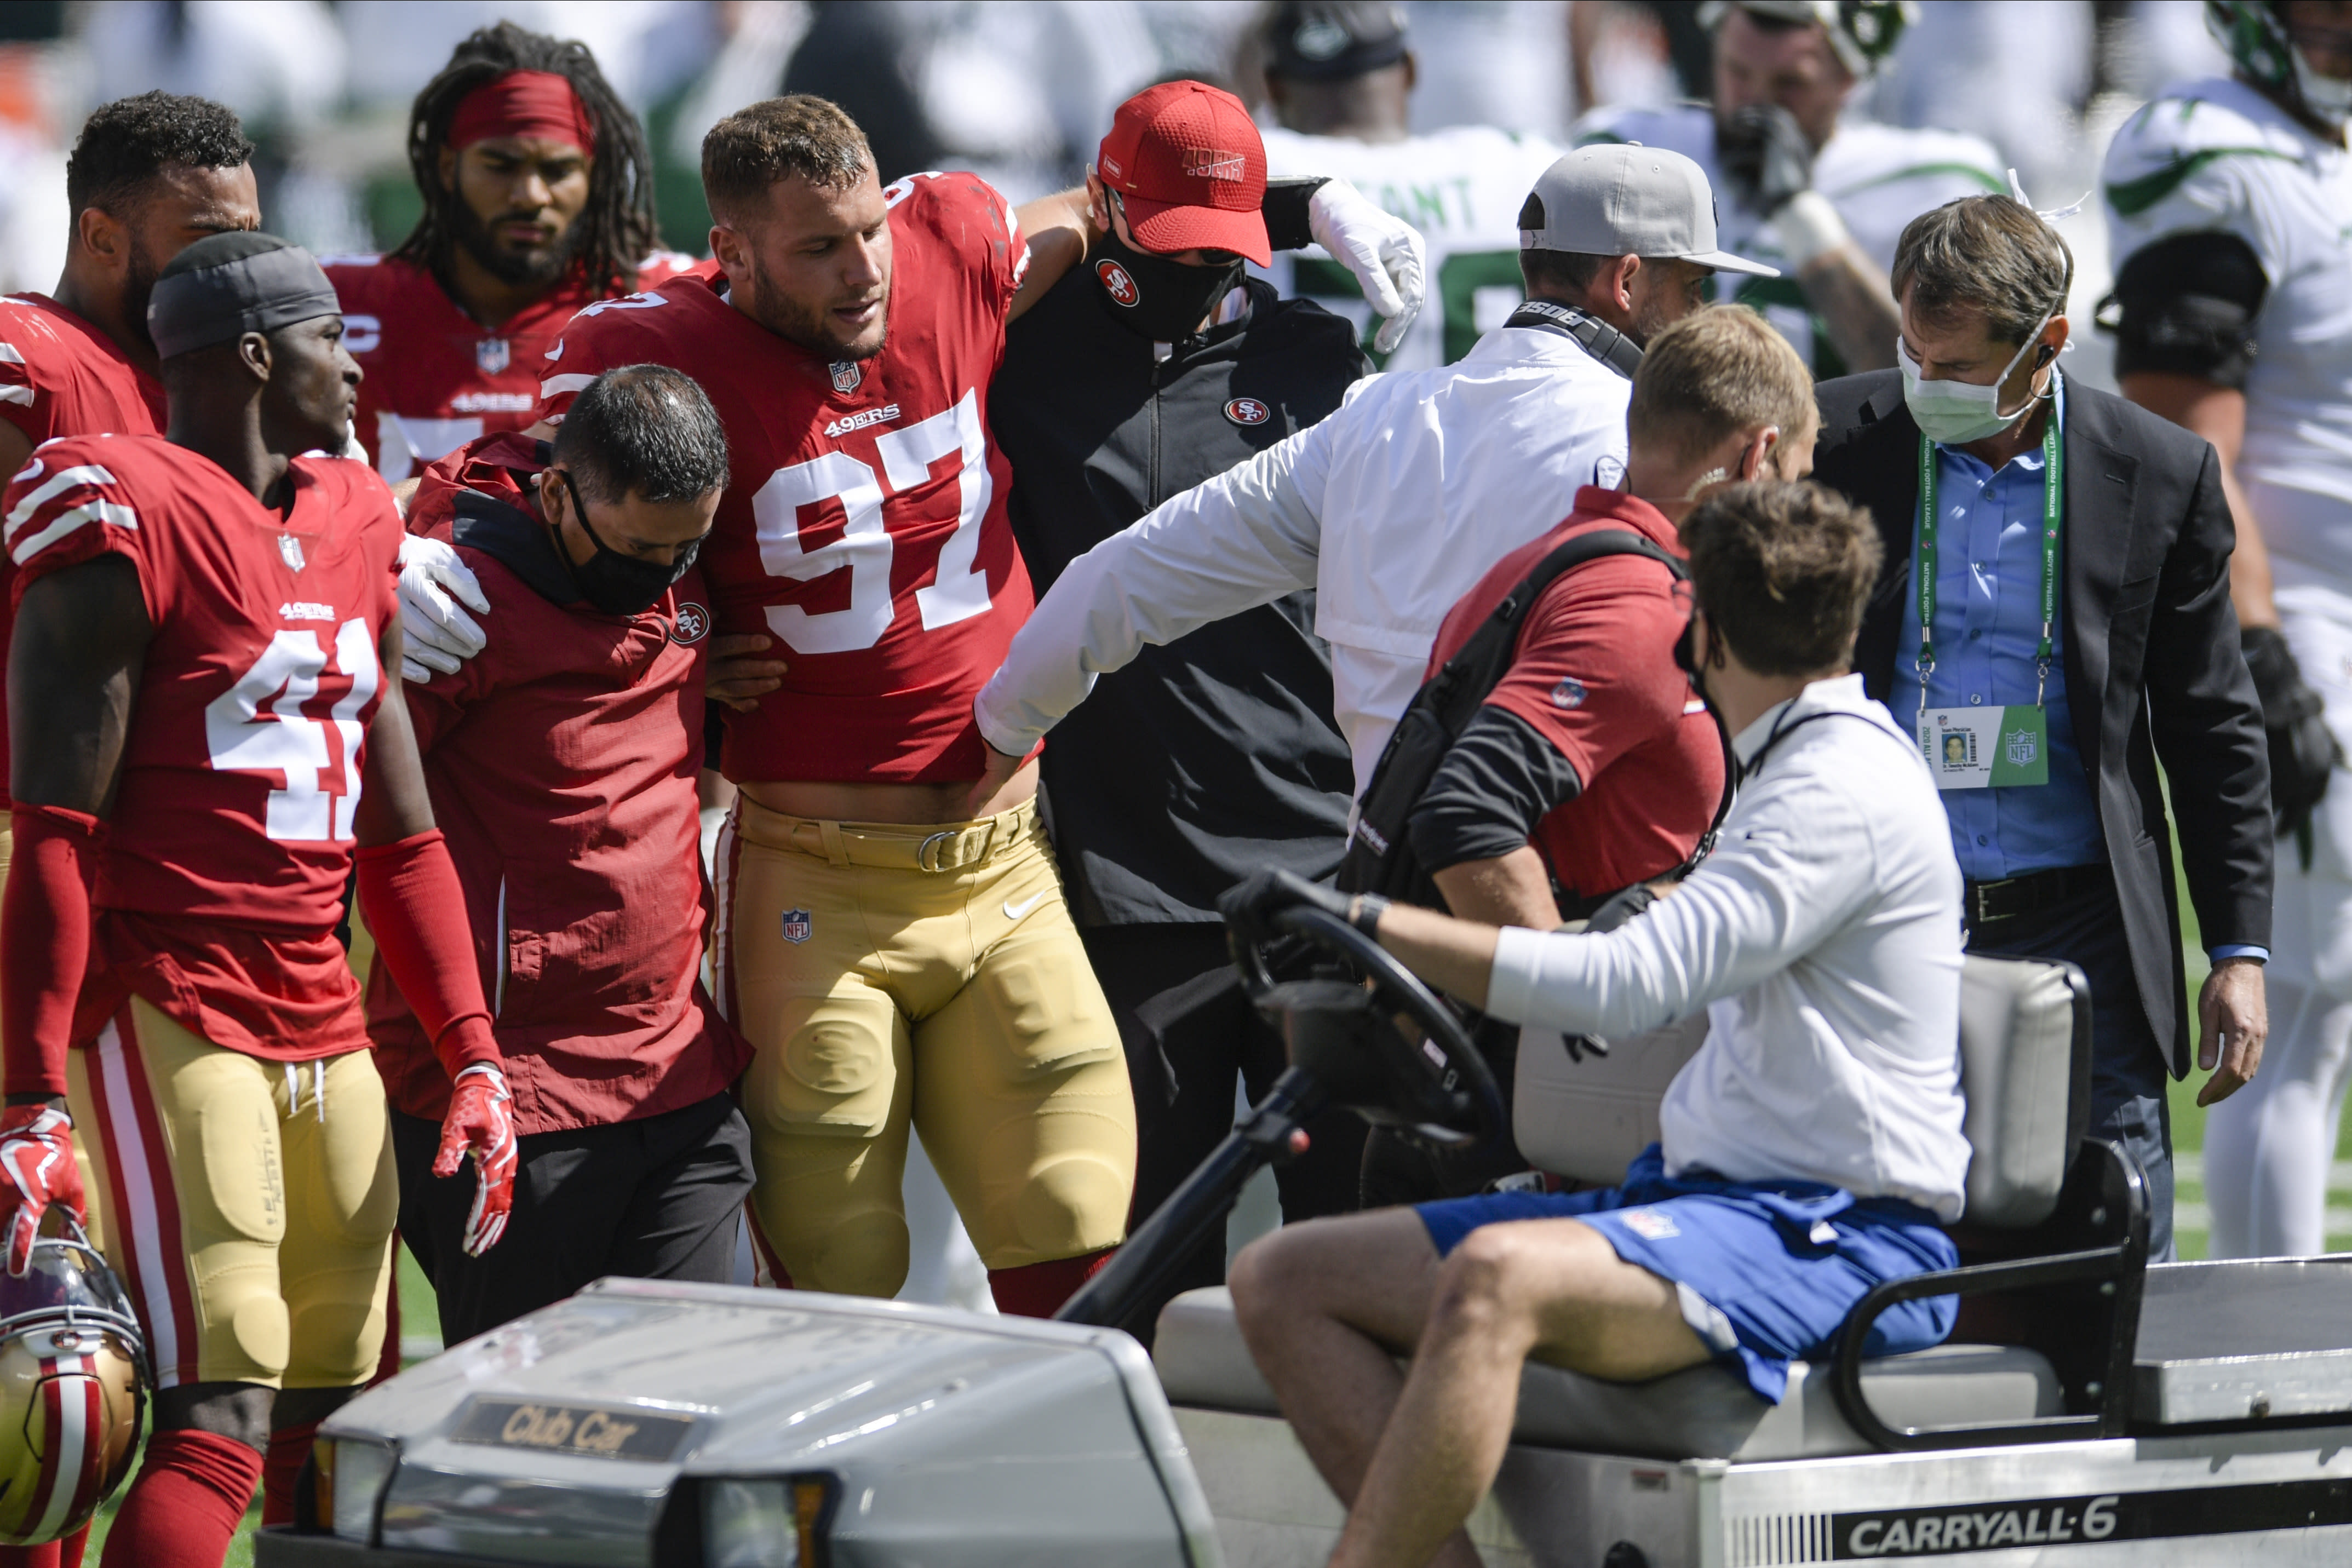 San Francisco 49ers defensive end Nick Bosa (97) is helped off the field after being injured during the first half of an NFL football game against the New York Jets, Sunday, Sept. 20, 2020, in East Rutherford, N.J. (AP Photo/Bill Kostroun)